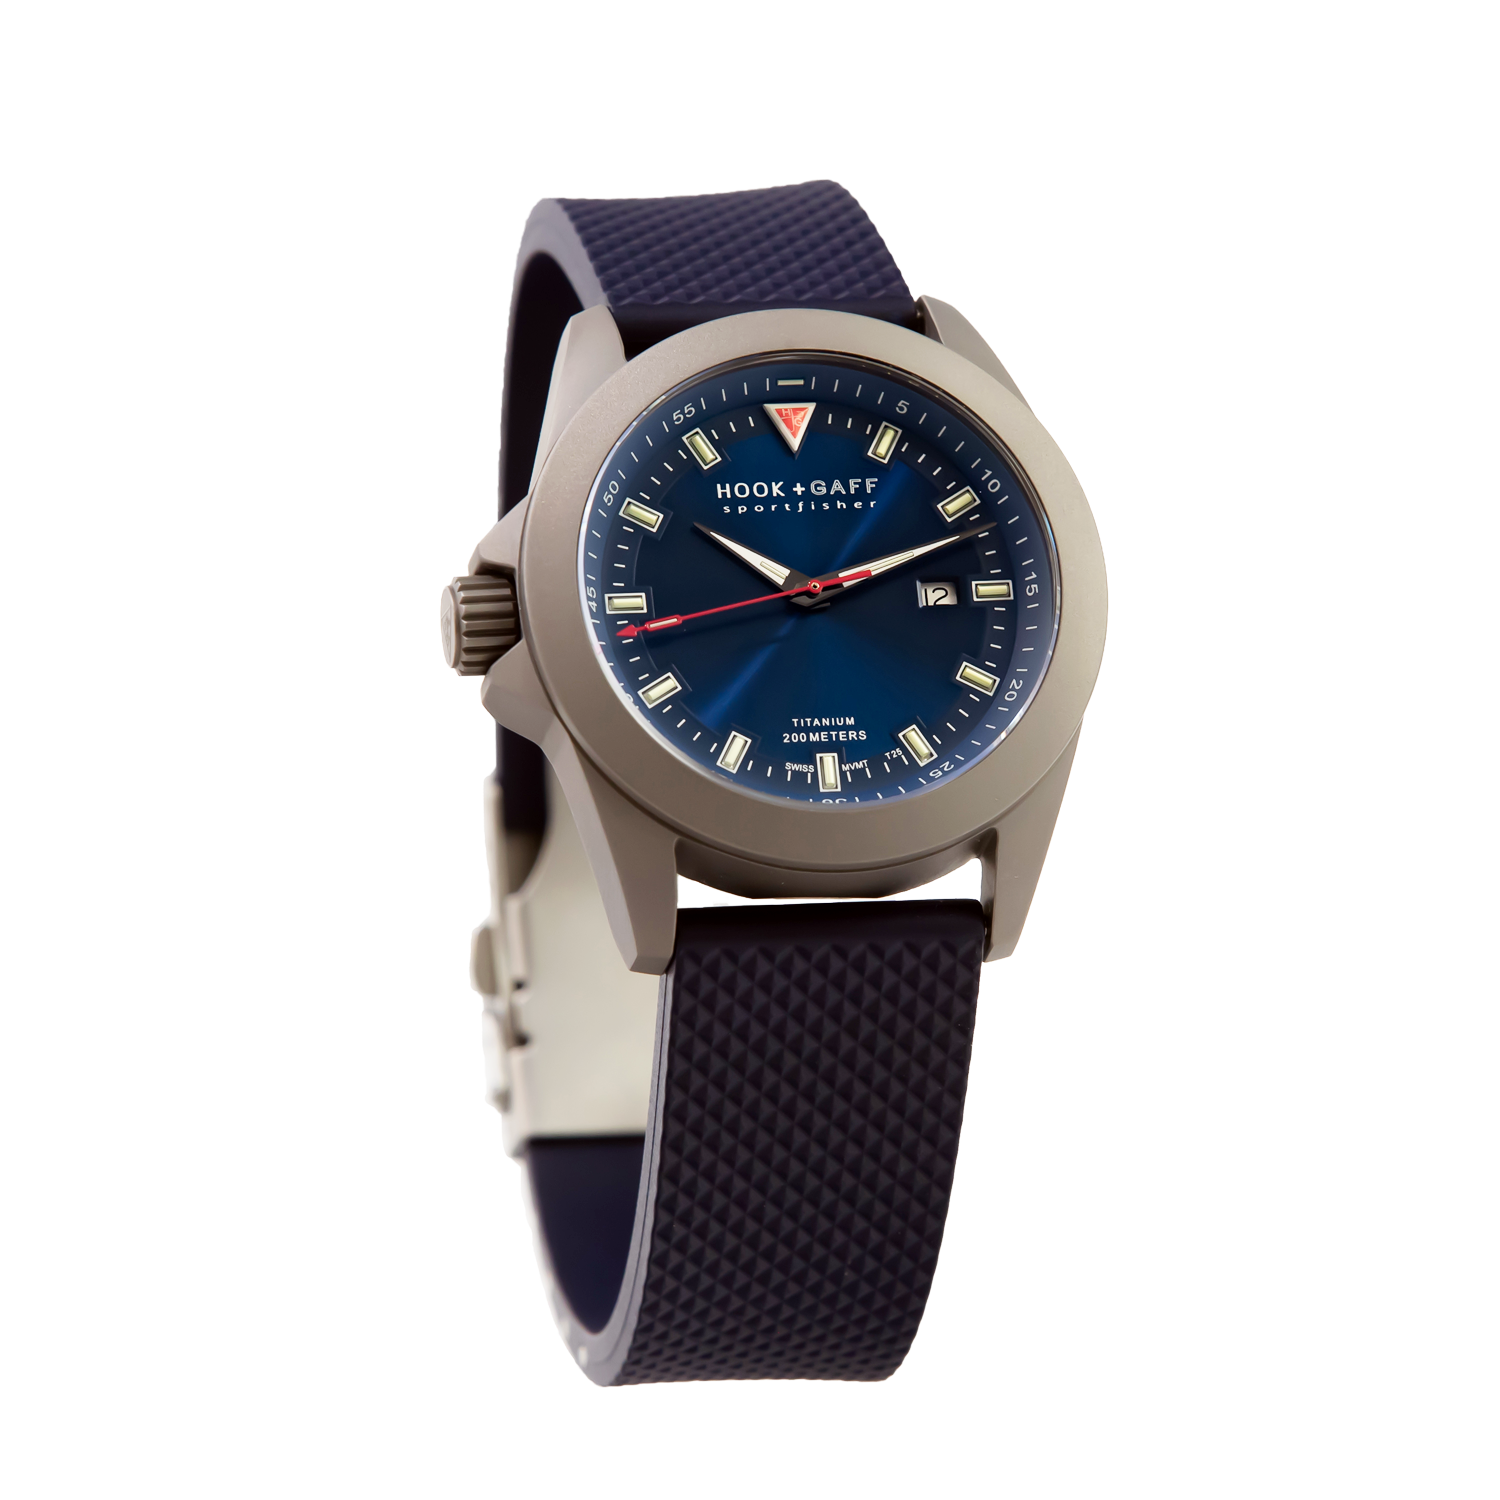 New Sportfisher - Blue Dial